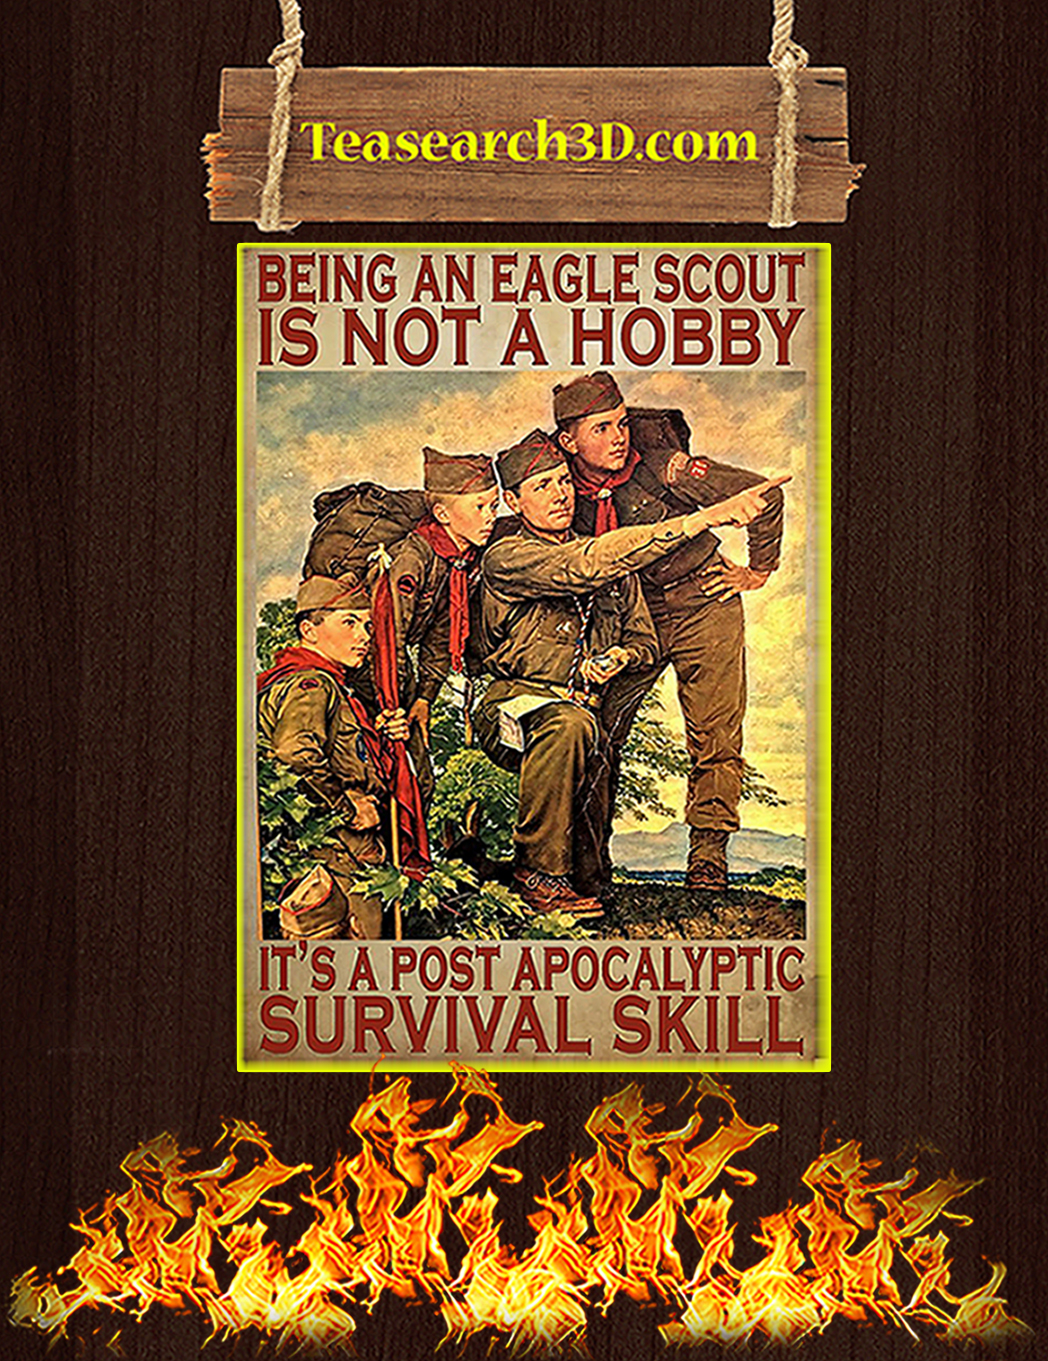 Being an eagle scout is not a hobby poster A1